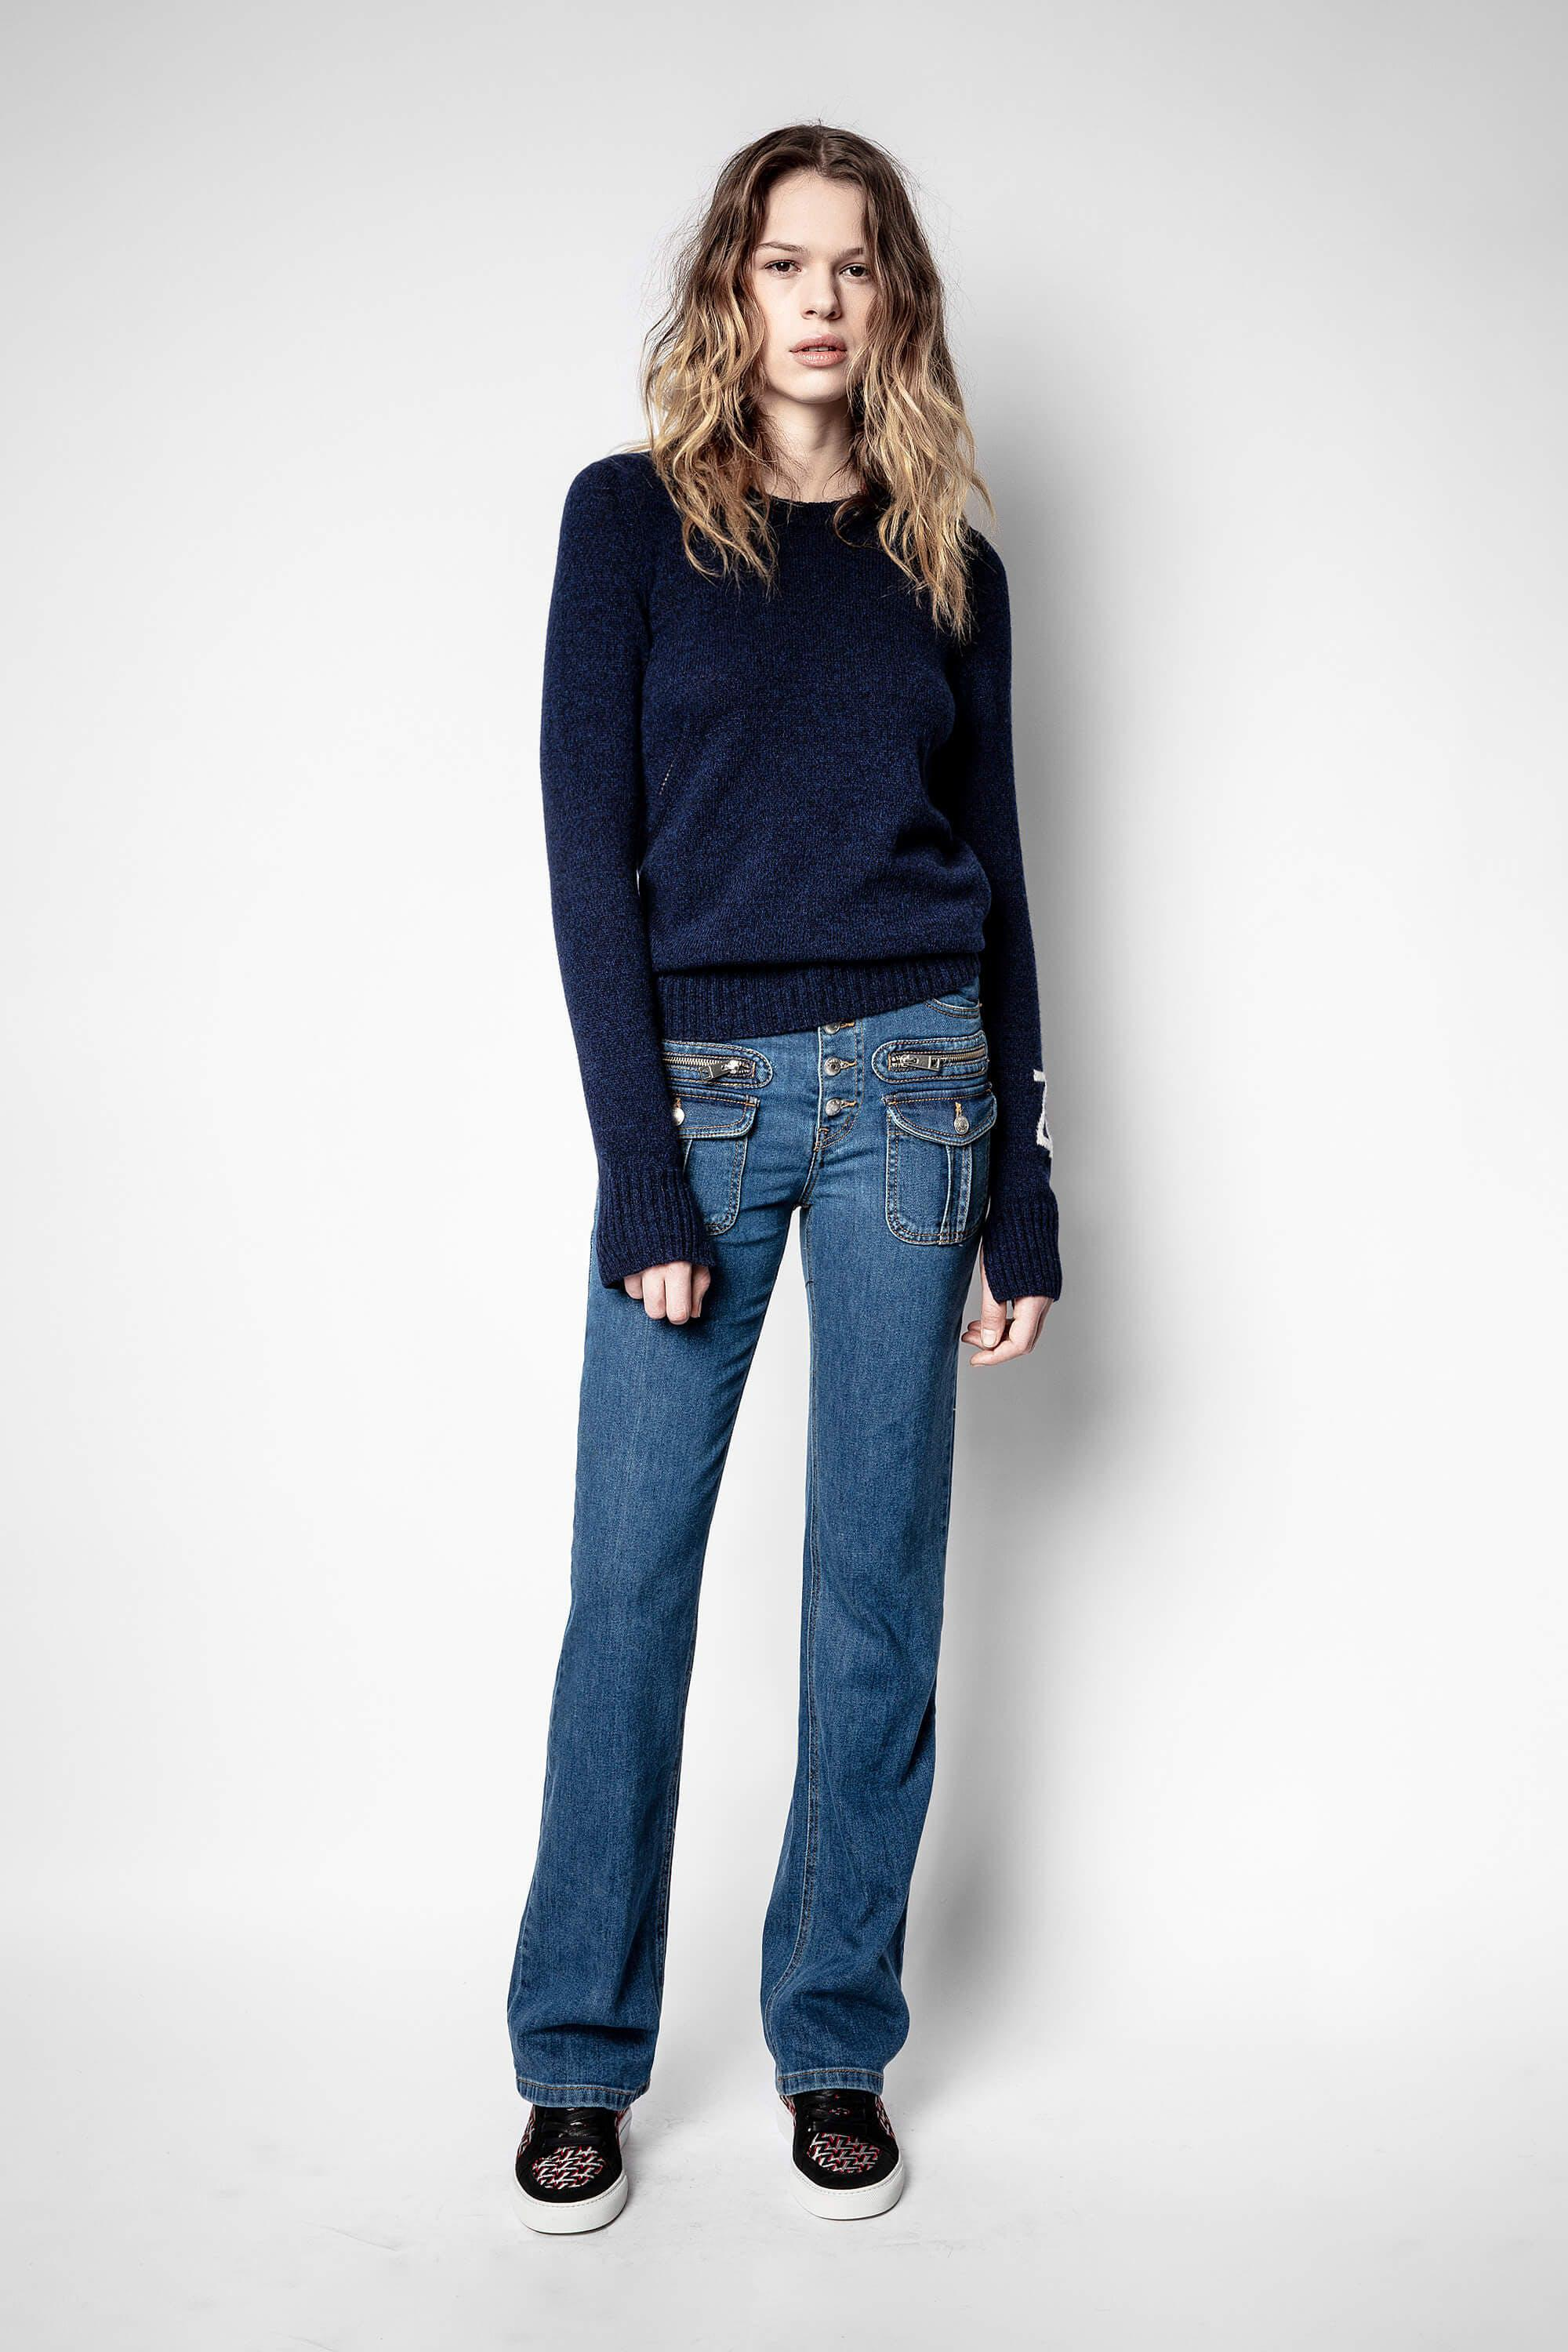 Source Recycled Cashmere Sweater